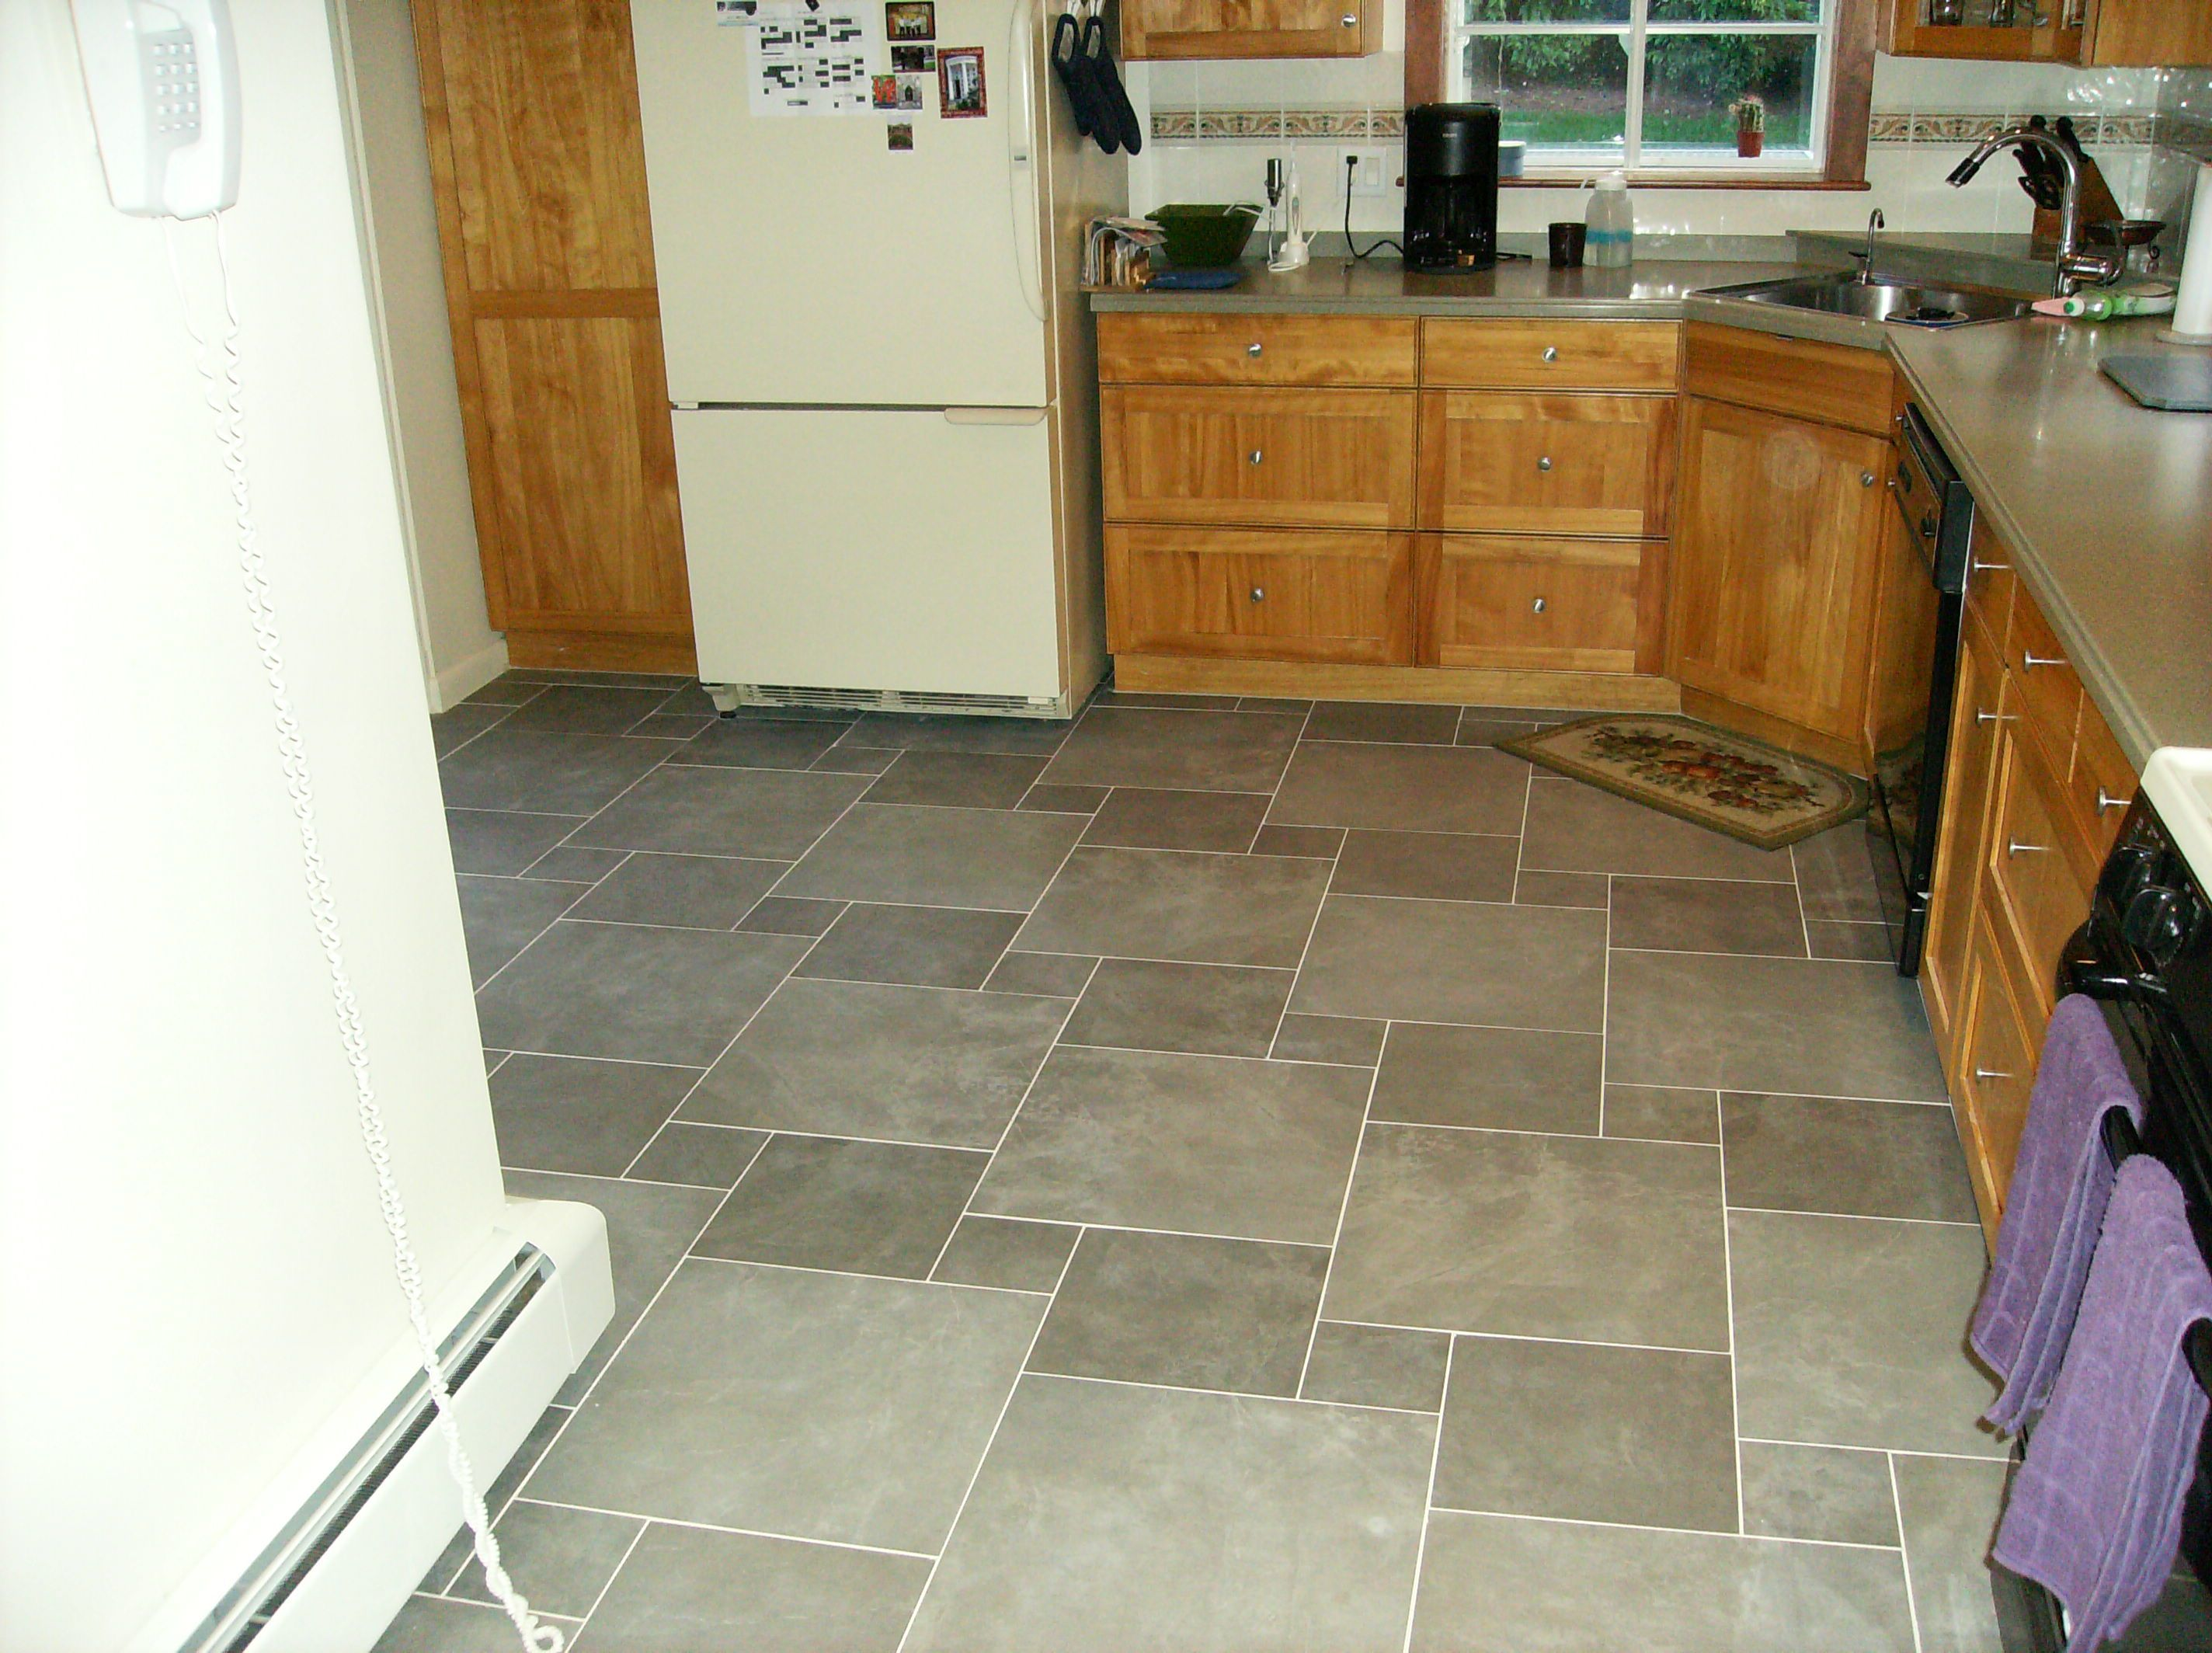 Interior design tile floor designs for flooring vinyl tile floor interior design tile floor designs for flooring vinyl tile floor calculator ceramic floors pictures stone wall dailygadgetfo Gallery